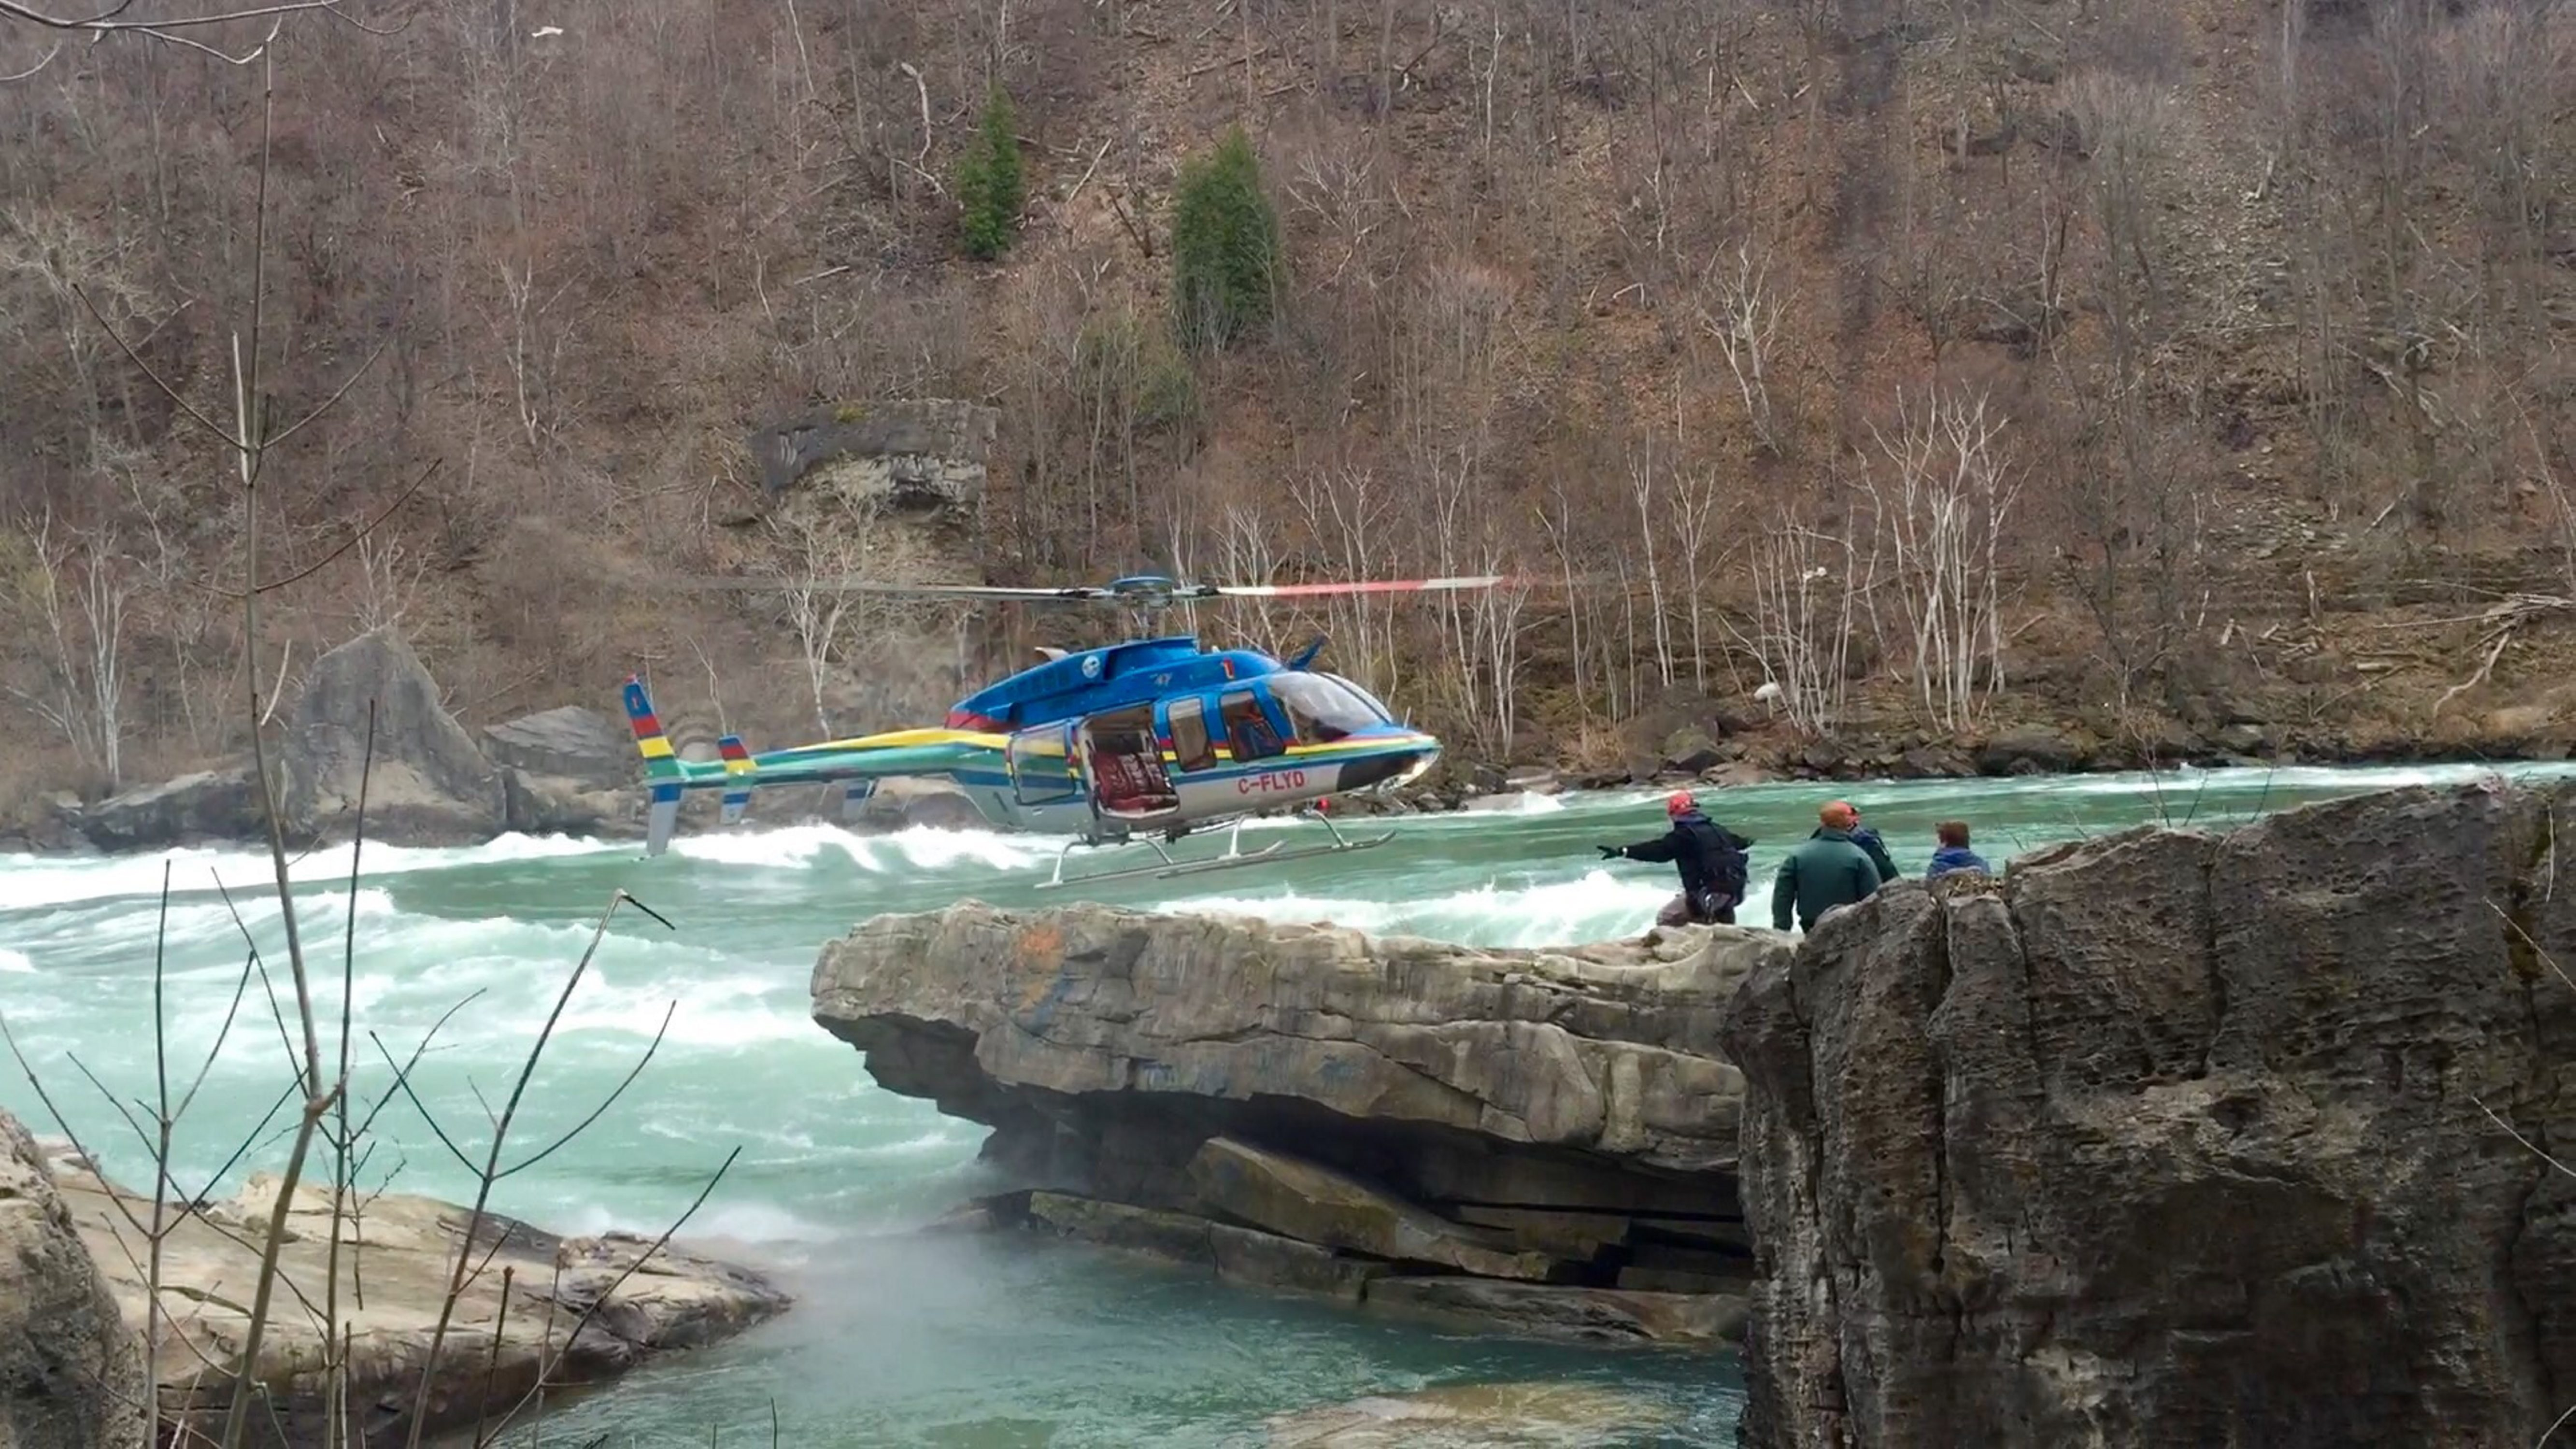 A helicopter provided by Niagara Helicopters rescues two stranded fishermen April 22 in the Niagara River gorge. (Niagara Parks Police)